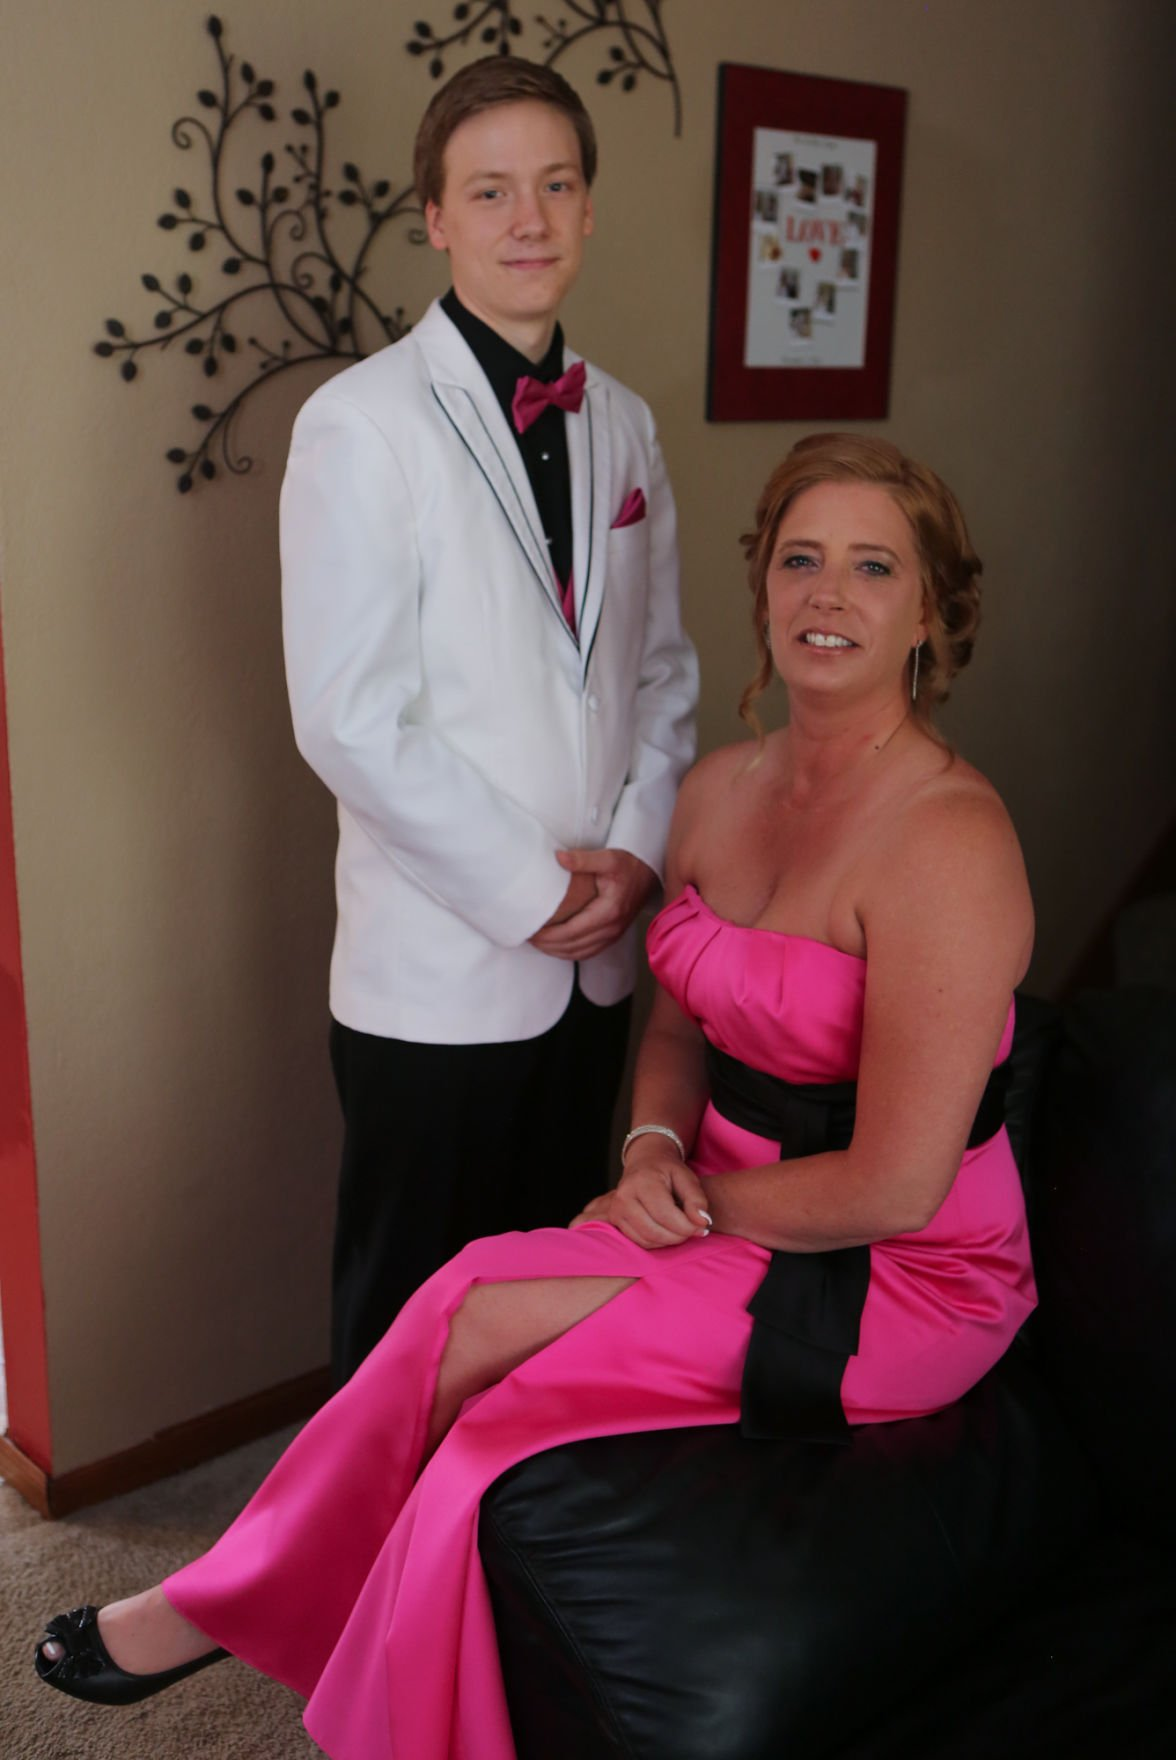 Mom gets ready to be son's date for high school prom